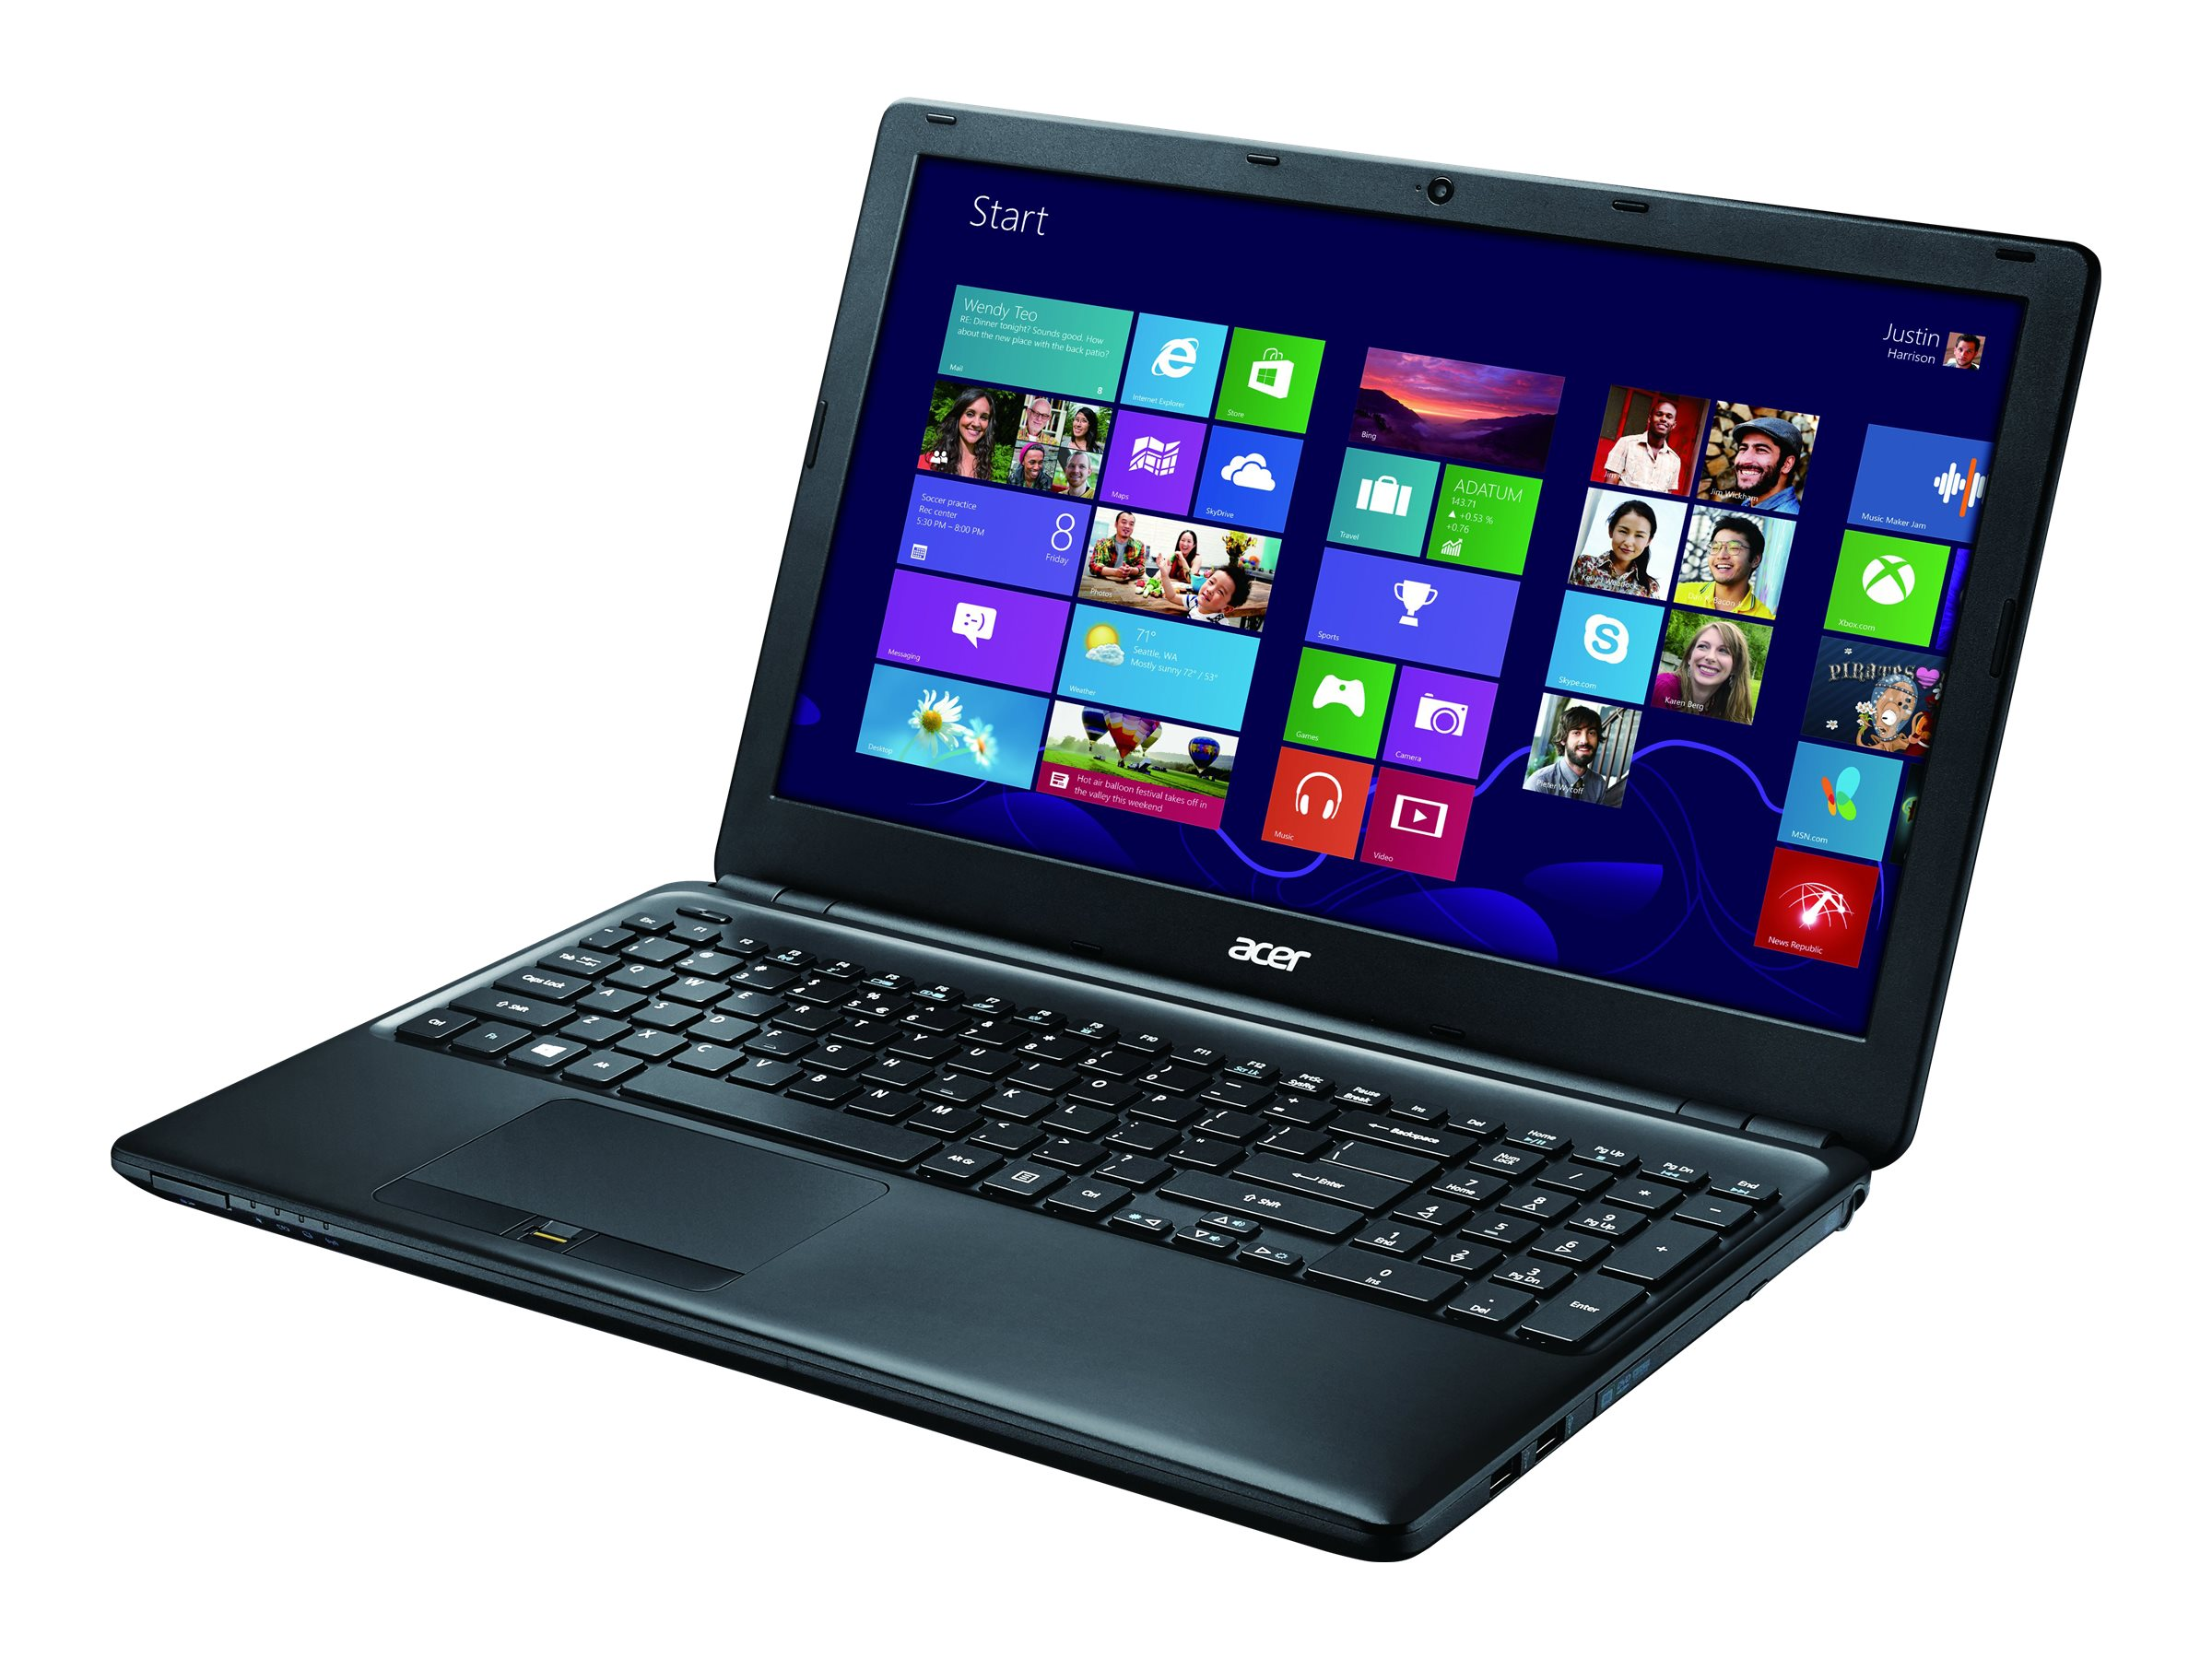 Acer TravelMate P455-M-5406 : 1.6GHz Core i5 15.6in display, NX.V8MAA.006, 17355238, Notebooks